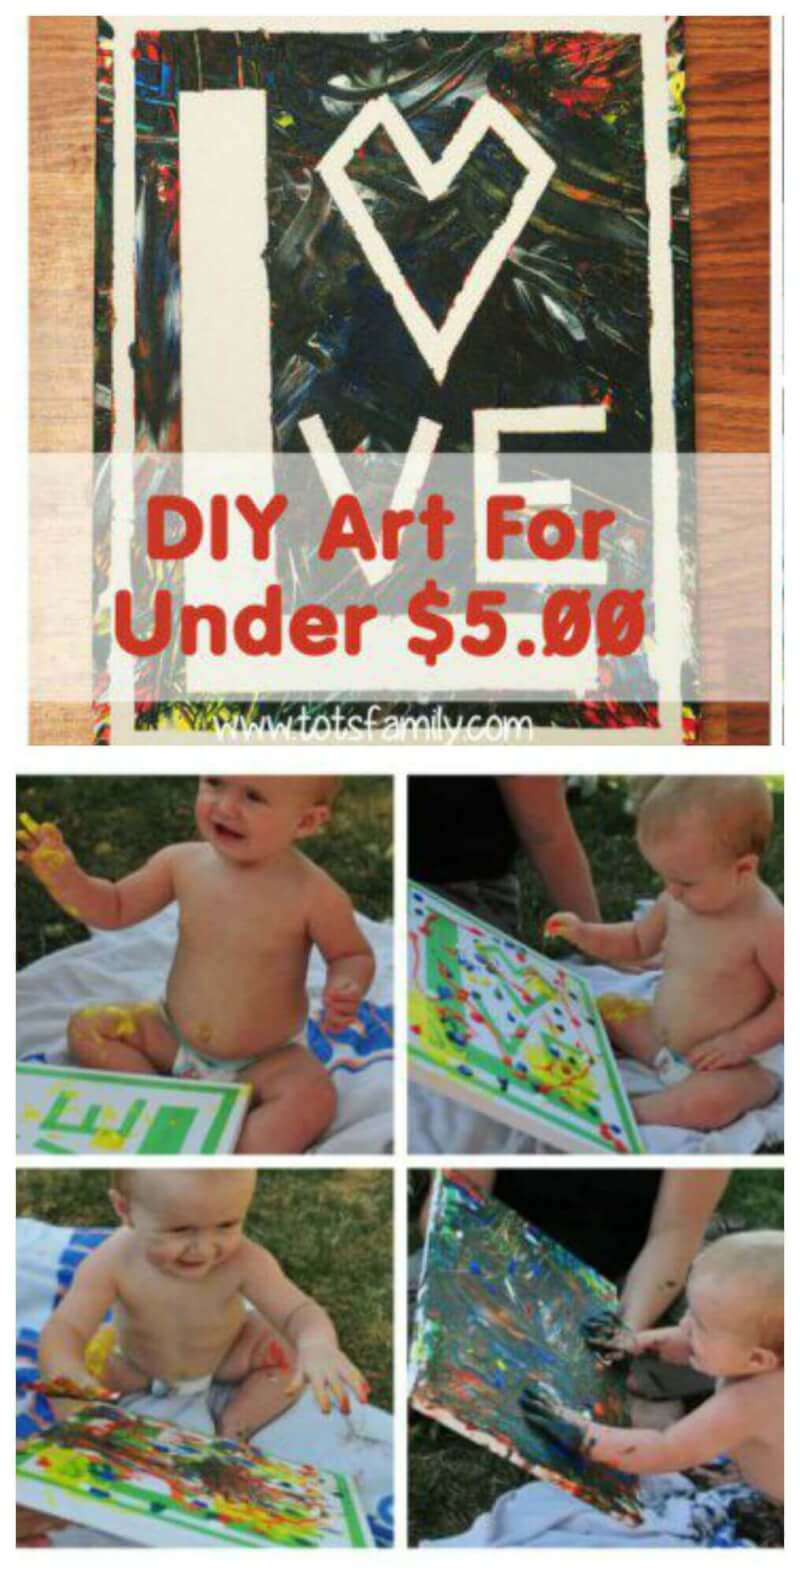 TOTS Family, Parenting, Kids, Food, Crafts, DIY and Travel DIY-Art-For-Under-5-Baby-edition1 DIY Art For Under $5 for Babies Crafts DIY Home Kids  toddler how to diy art diy